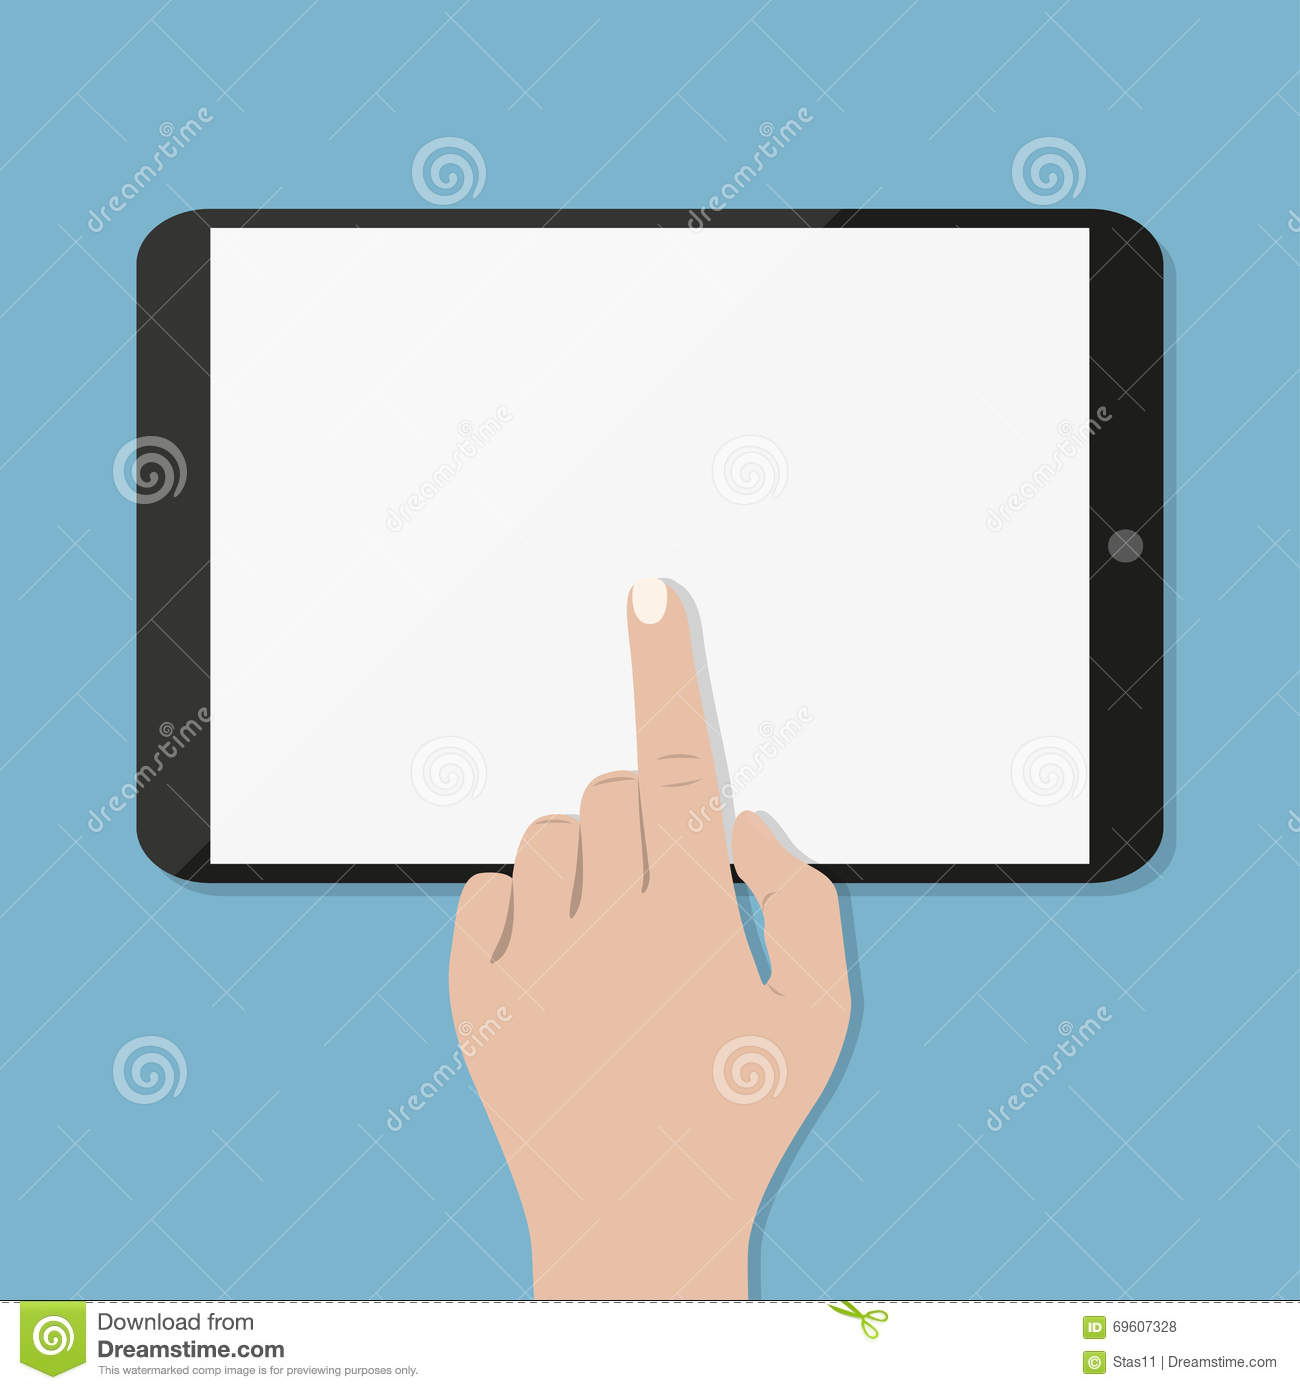 Hand Touching Blank Screen Of Tablet Computer Cartoon